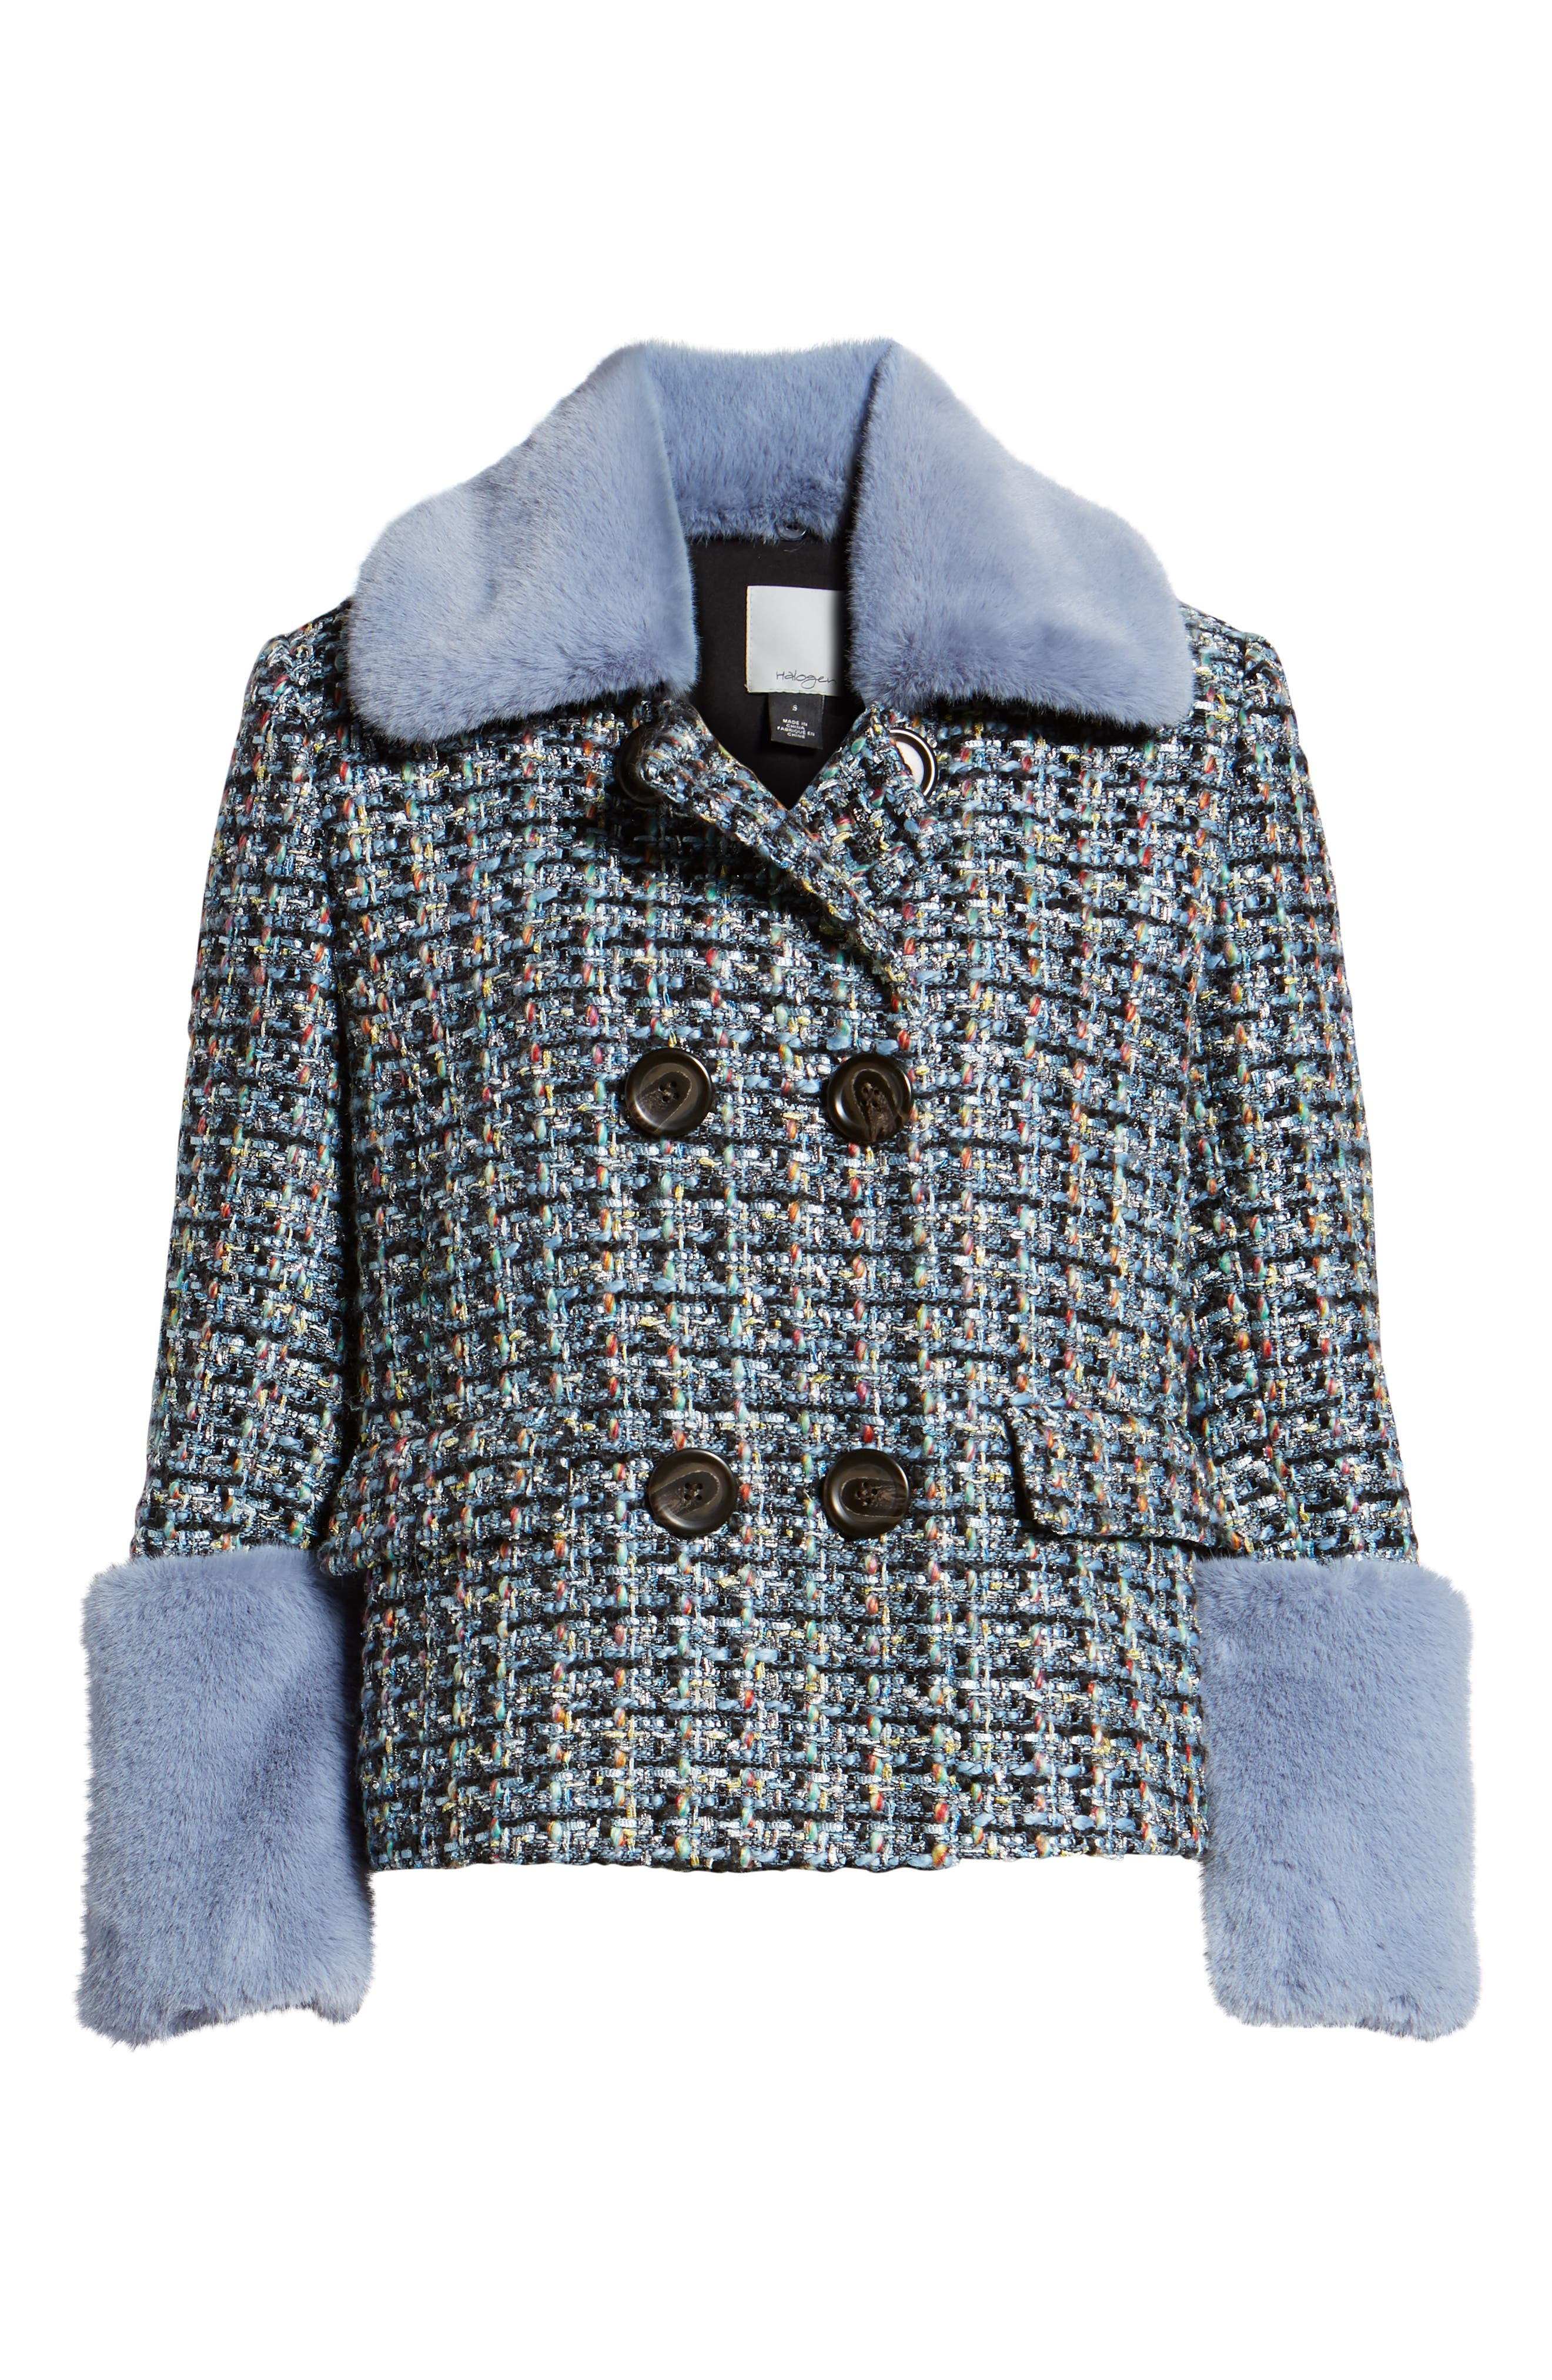 x Atlantic-Pacific Tweed Jacket with Removable Faux Fur Trim,                             Alternate thumbnail 7, color,                             BLACK MULTI TWEED